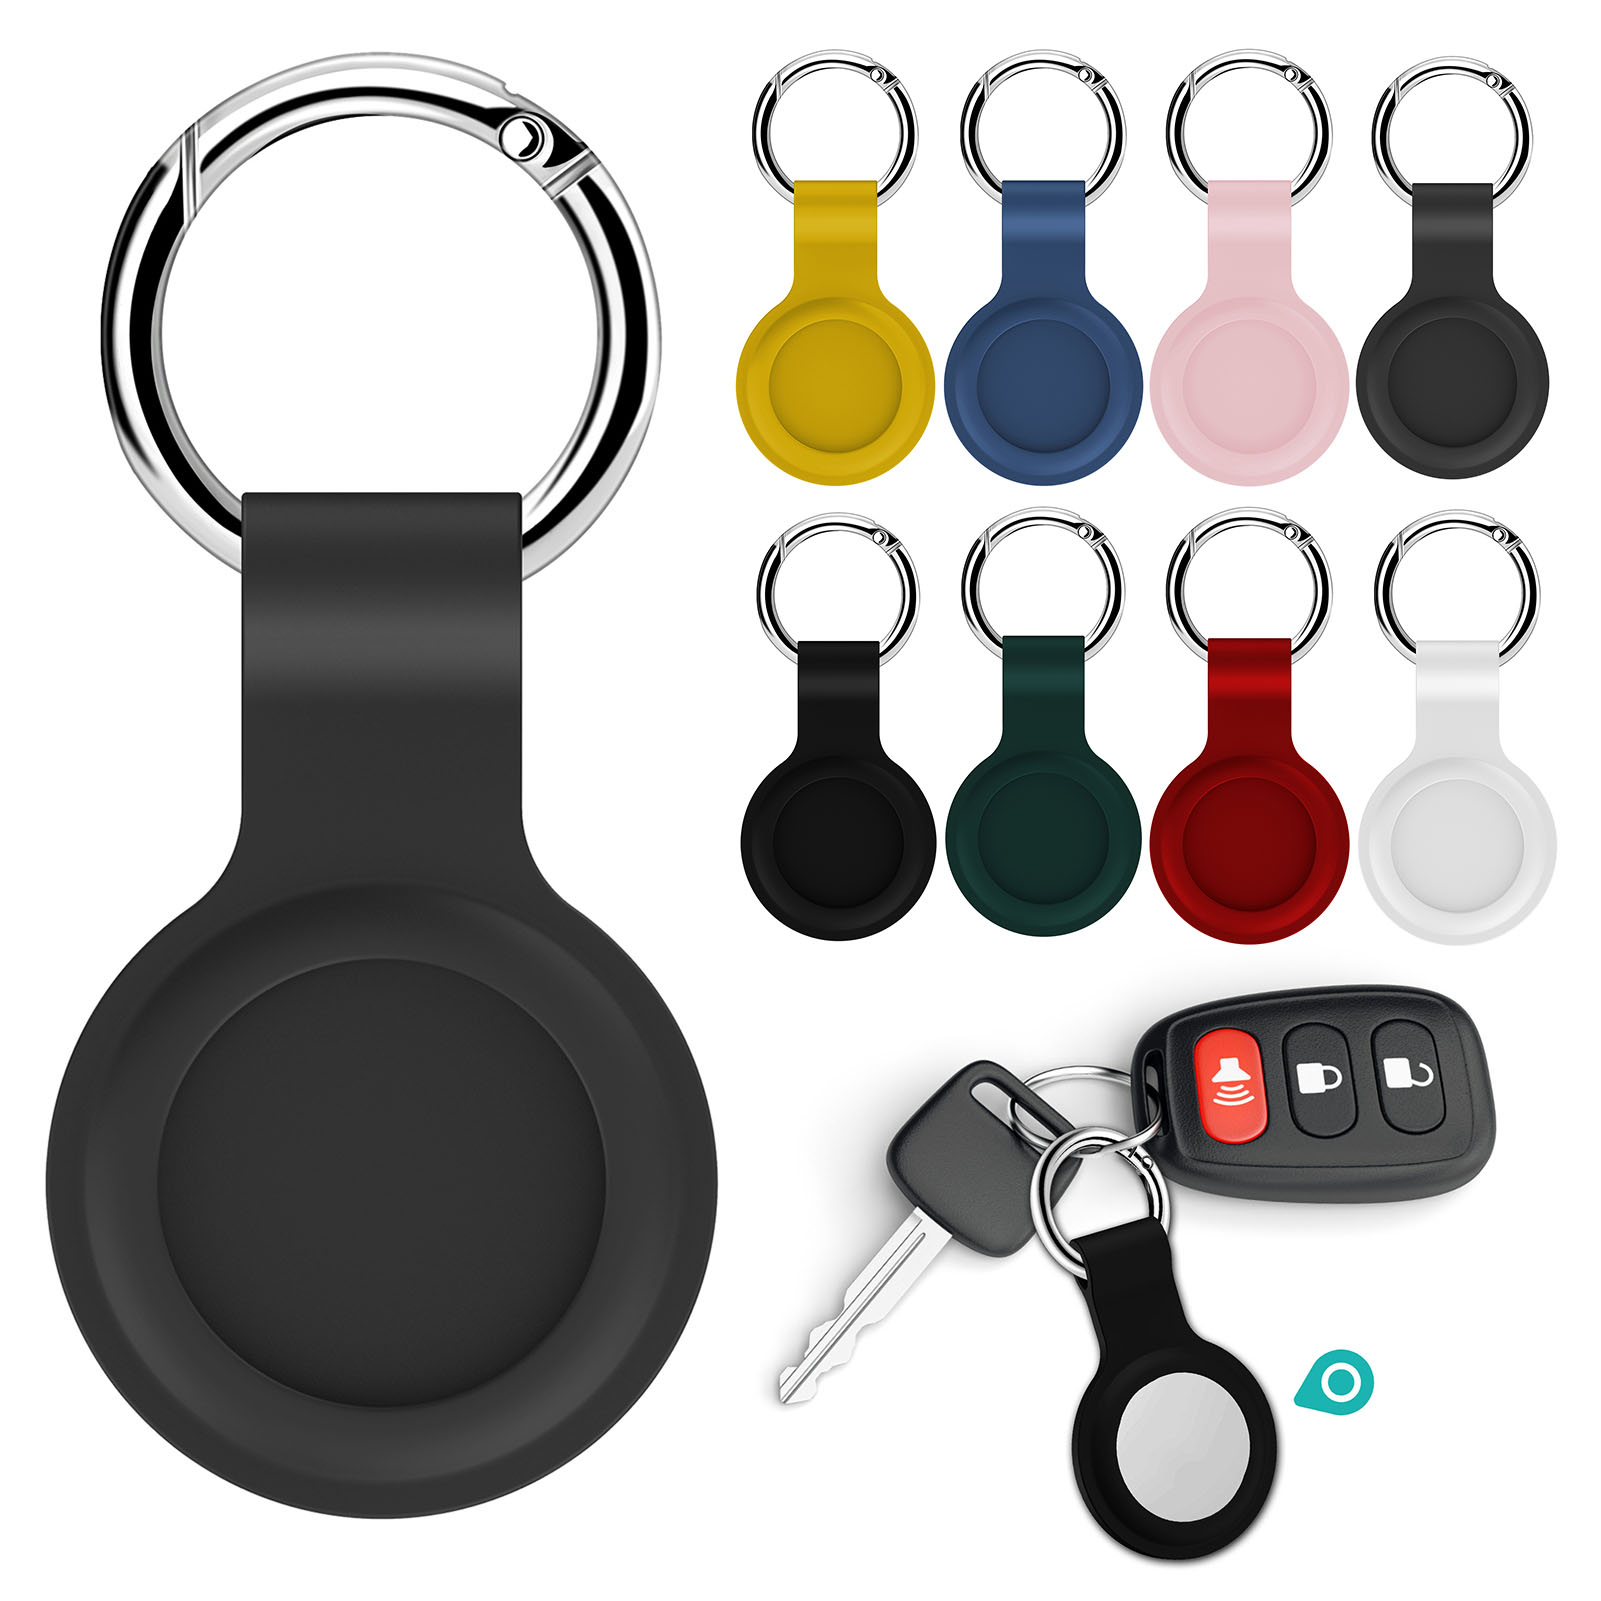 For Apple Airtag Case Waterproof Silicone Strap Protective Hangable Key Ring Luggage for Airtags Air Tags Keychain Accessories